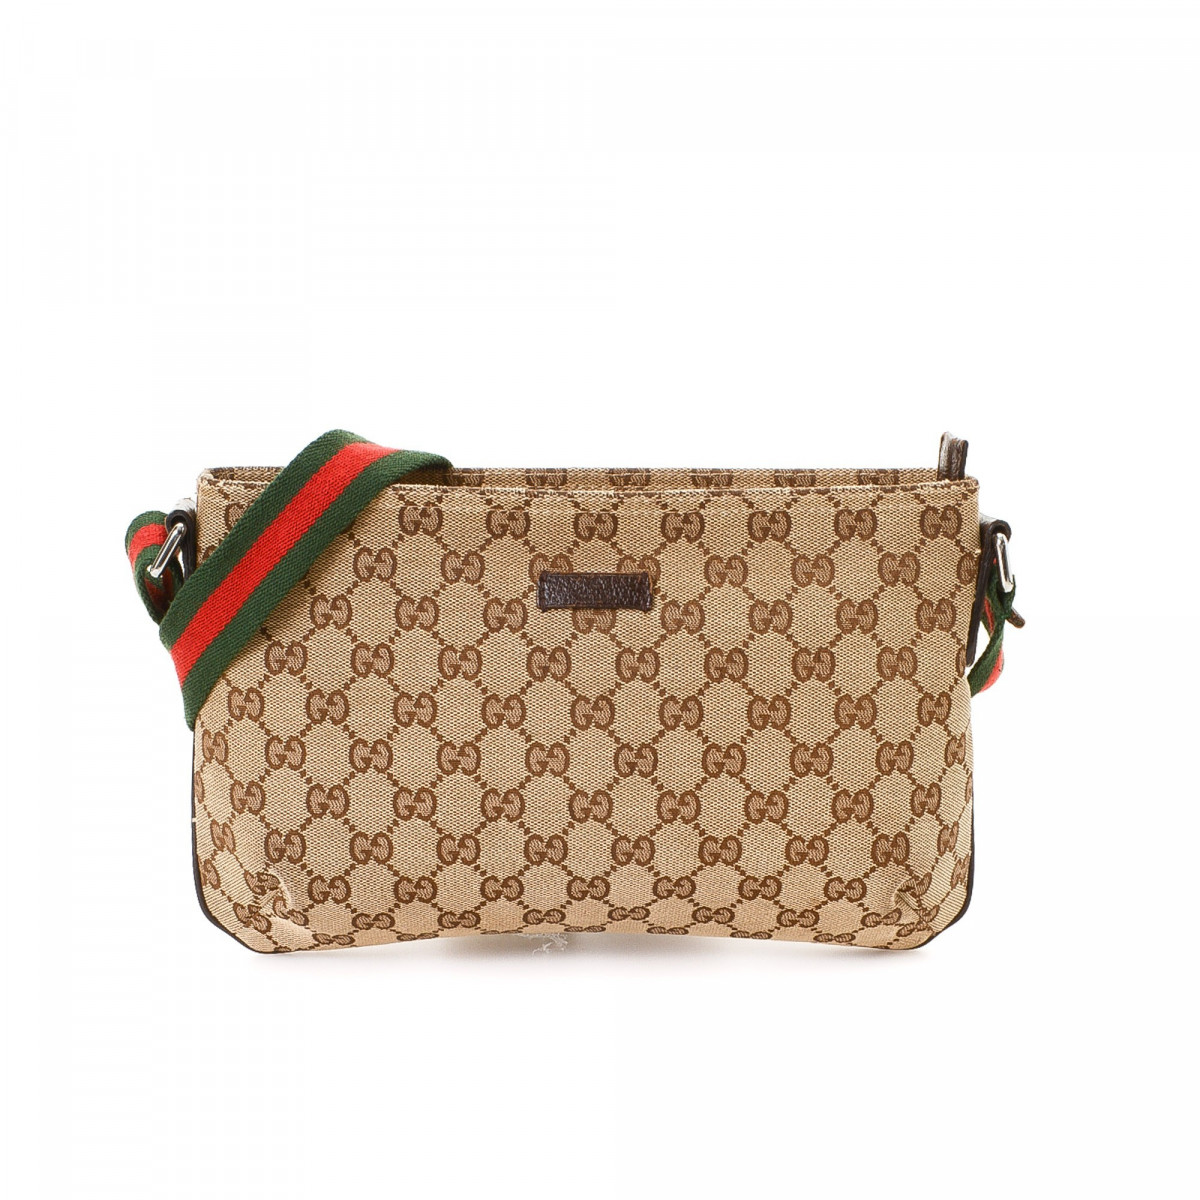 Vintage Gucci Crossbody Bag 69